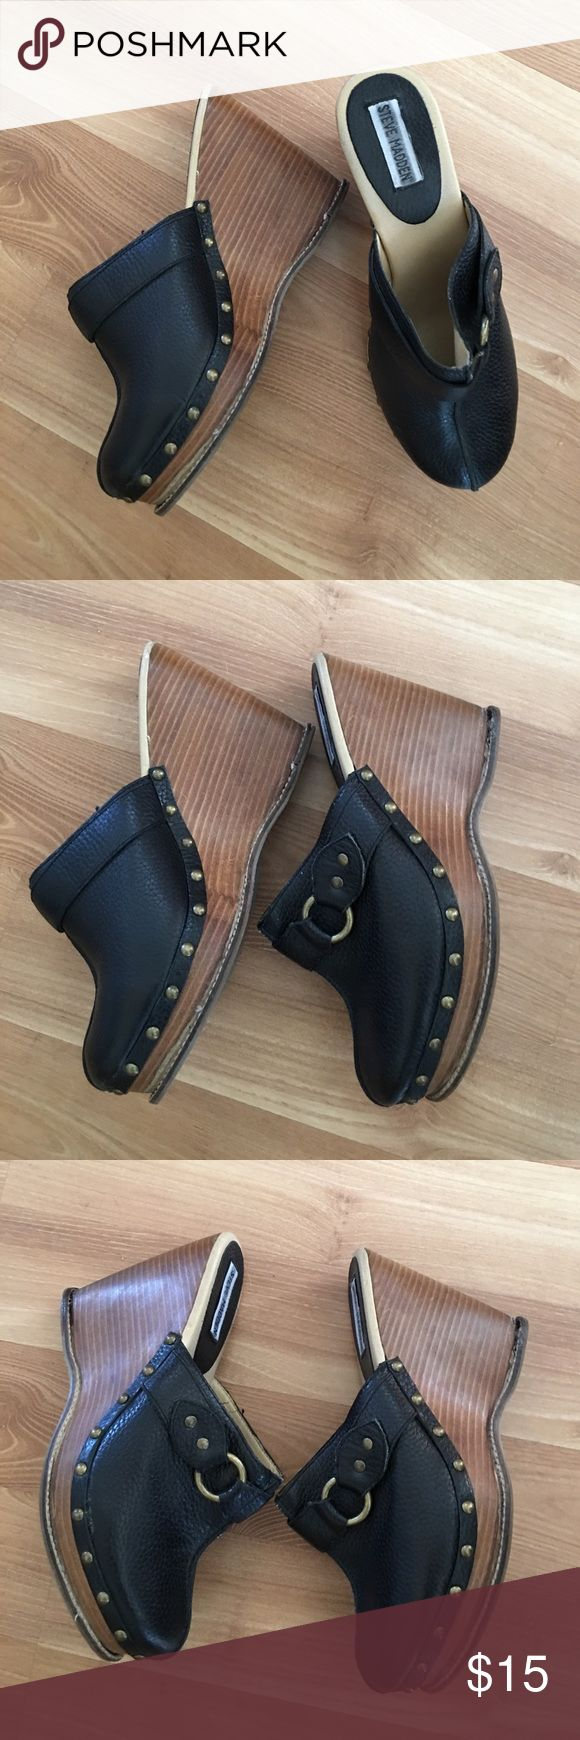 Steve Madden slip on clogs size 10M Steeve Madden heeled clogs . Leather upper. Size 10M. In good used condtion. Bin#06 Steve Madden Shoes Mules & Clogs